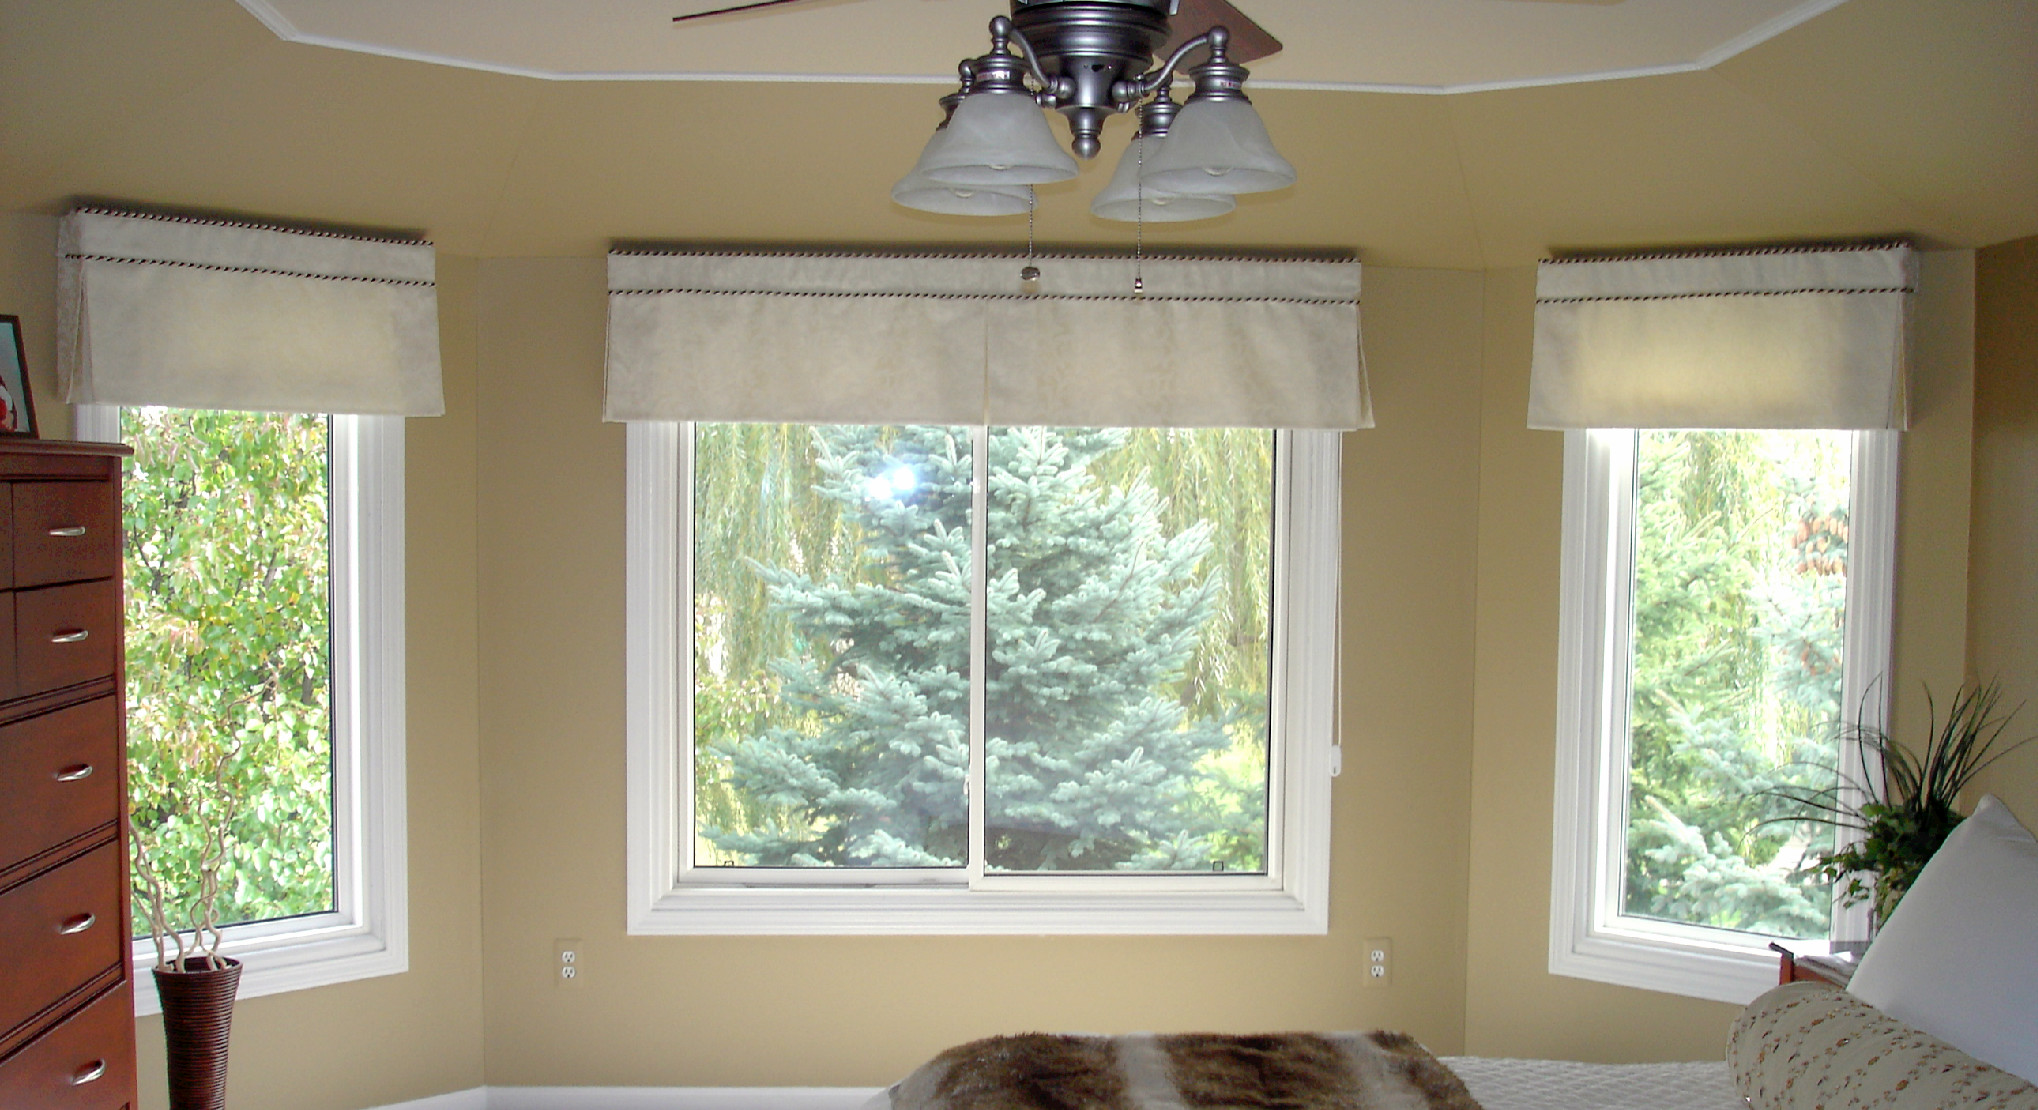 Bathroom Valance Ideas On A Maximum Use The Valances Window Treatments Window